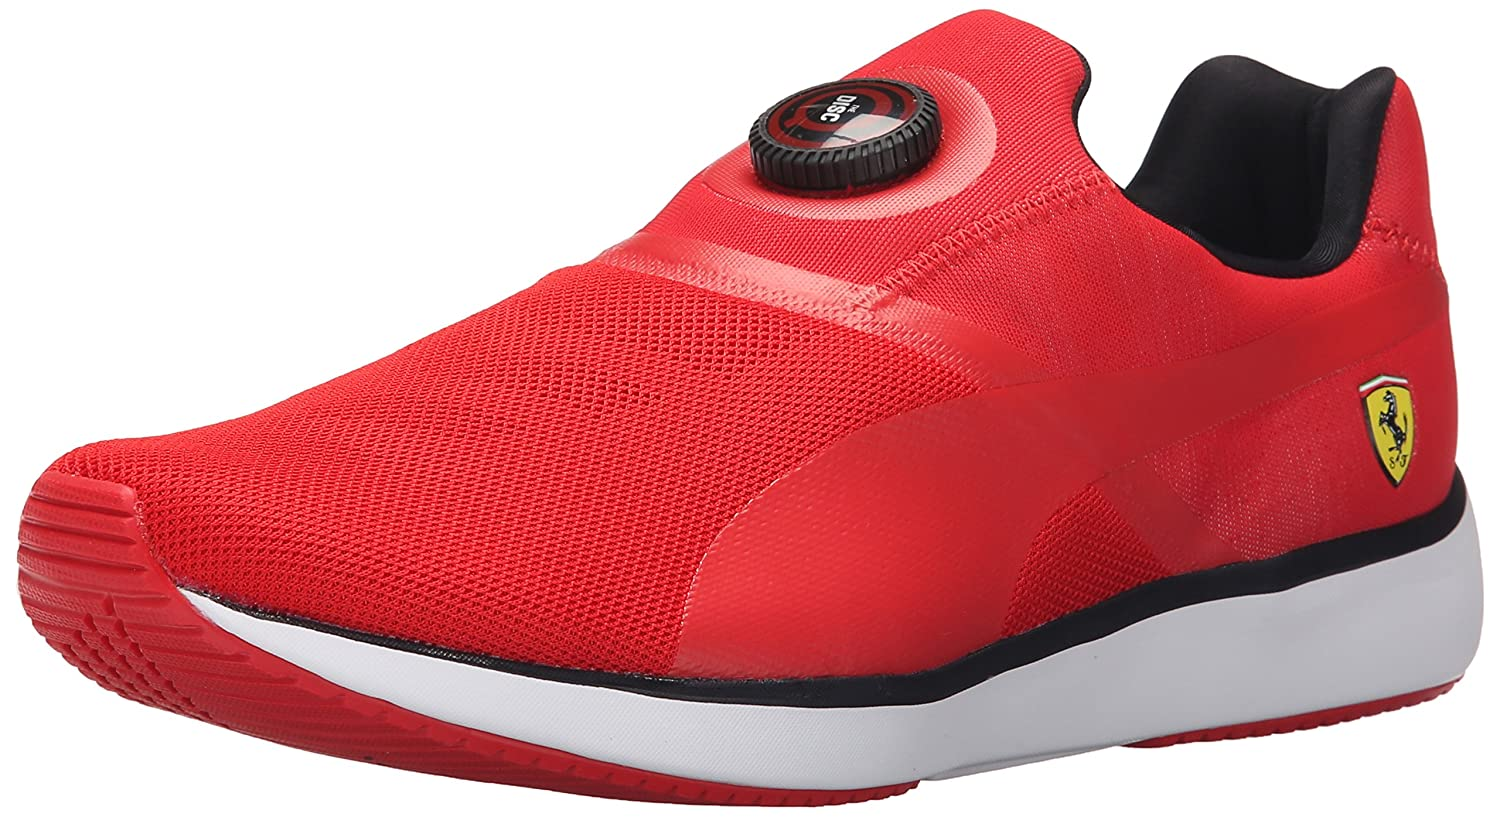 7b4a016976d low price tenis puma ferrari drift cat 6 jr. blancas niño 921e5 43464   coupon for amazon puma mens disc sf fashion sneaker shoes 8bd9c e5b72